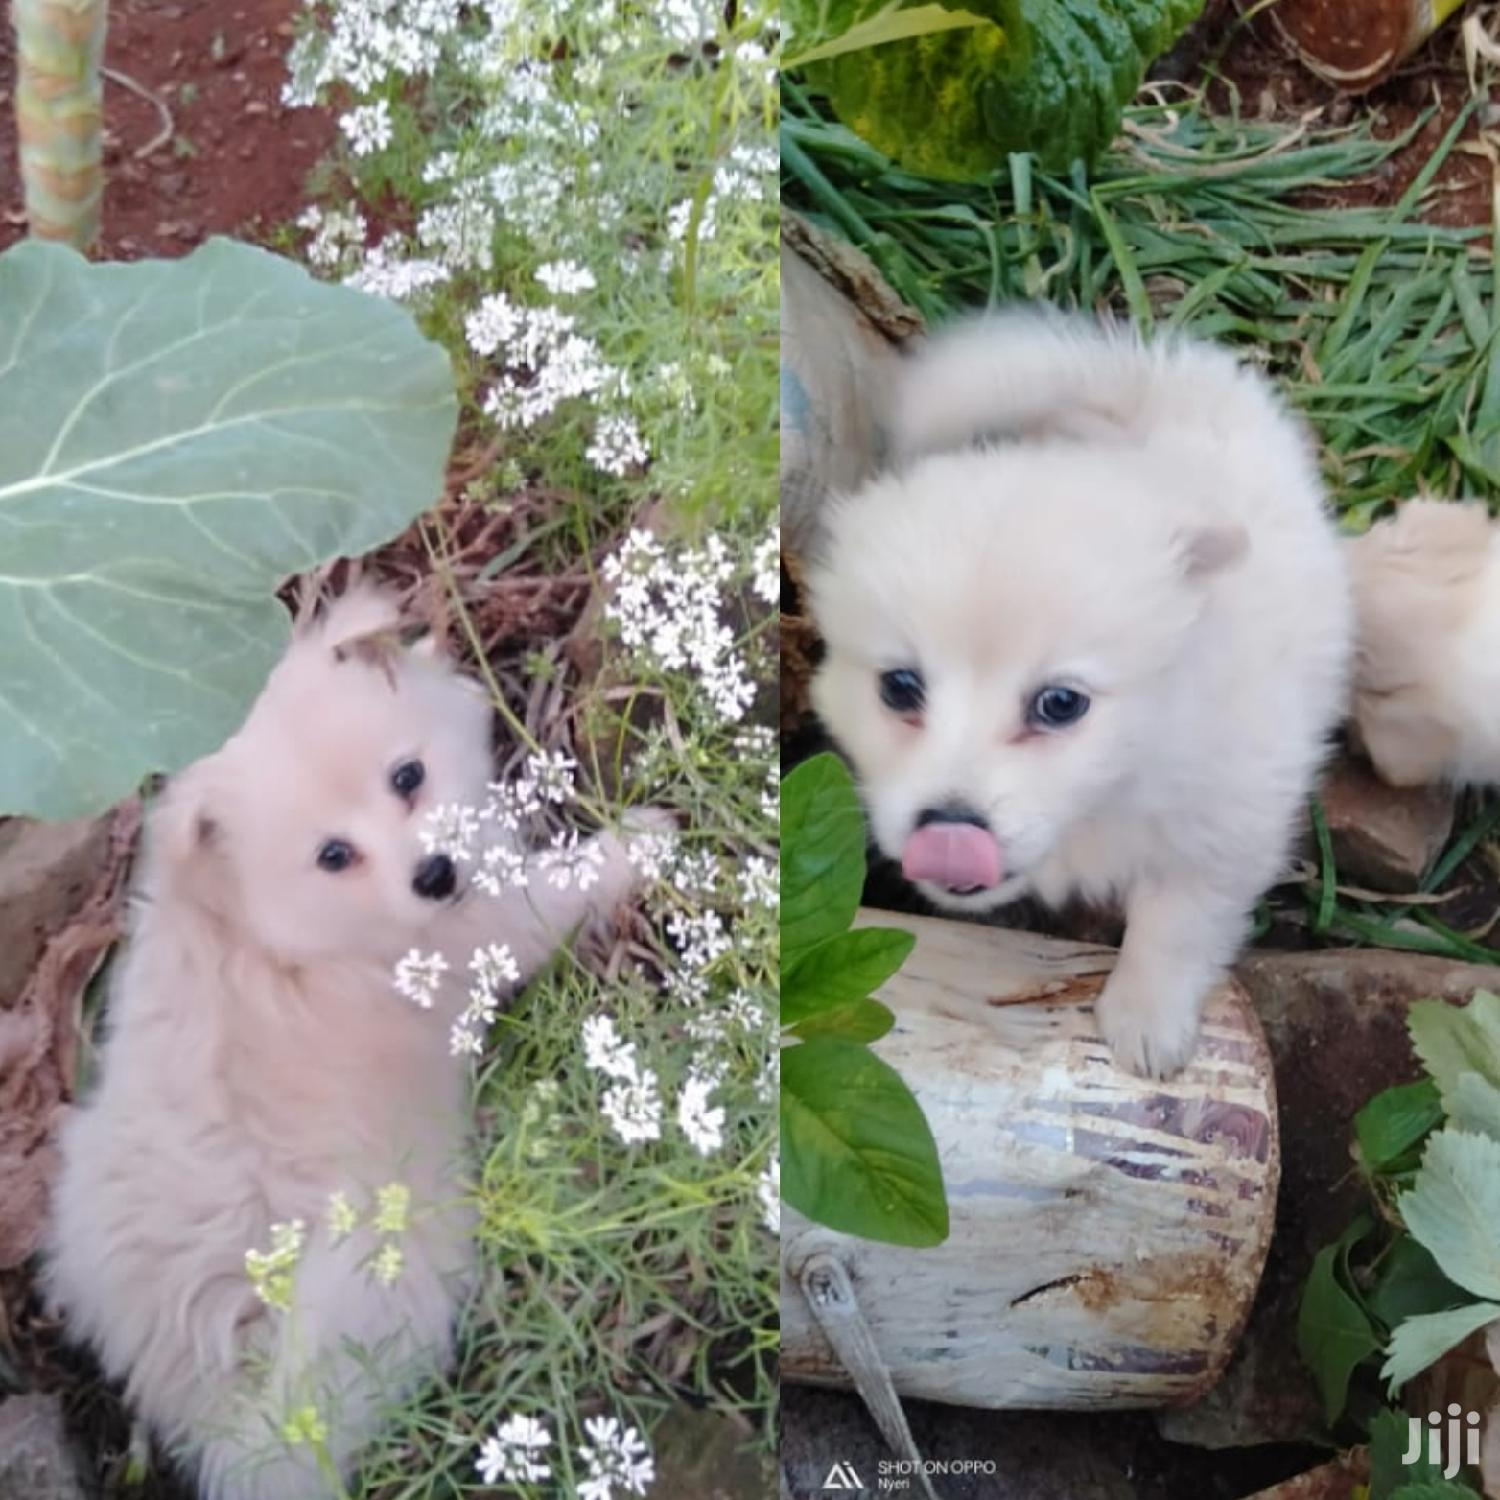 1-3 Month Male Mixed Breed Japanese Spitz | Dogs & Puppies for sale in Juja, Kiambu, Kenya